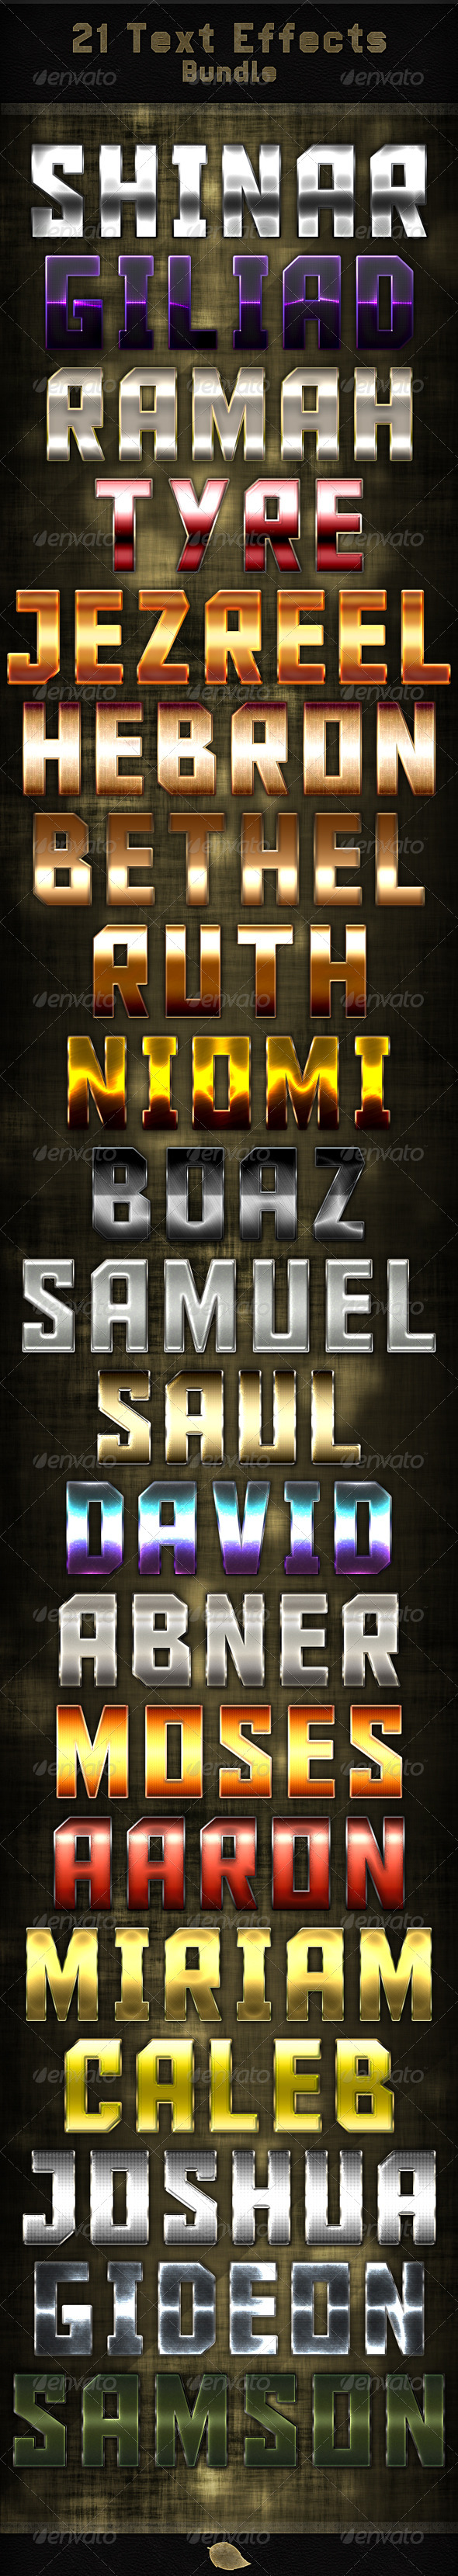 GraphicRiver 21 Text Effects Bundle 5885369